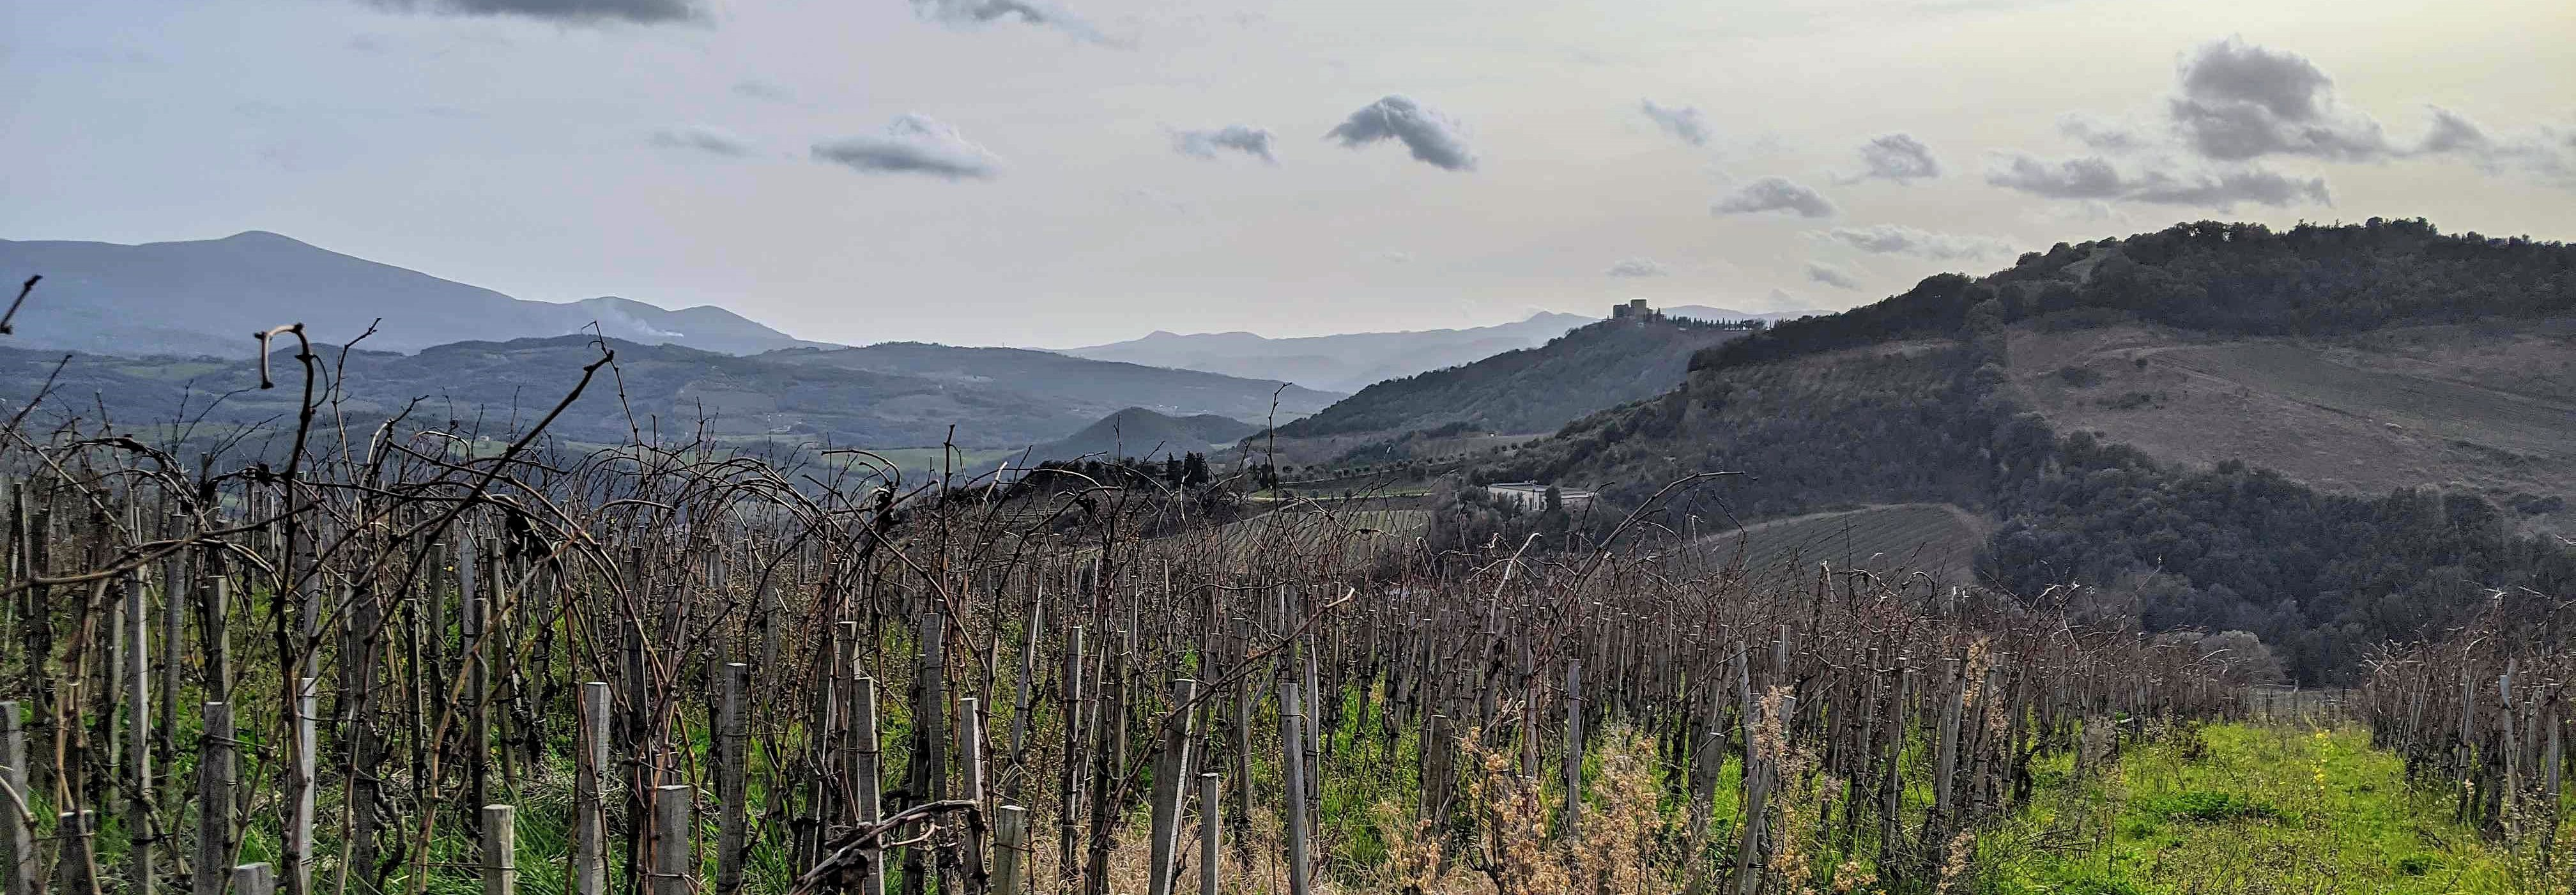 vineyard Podere Le Ripi in Montalcino